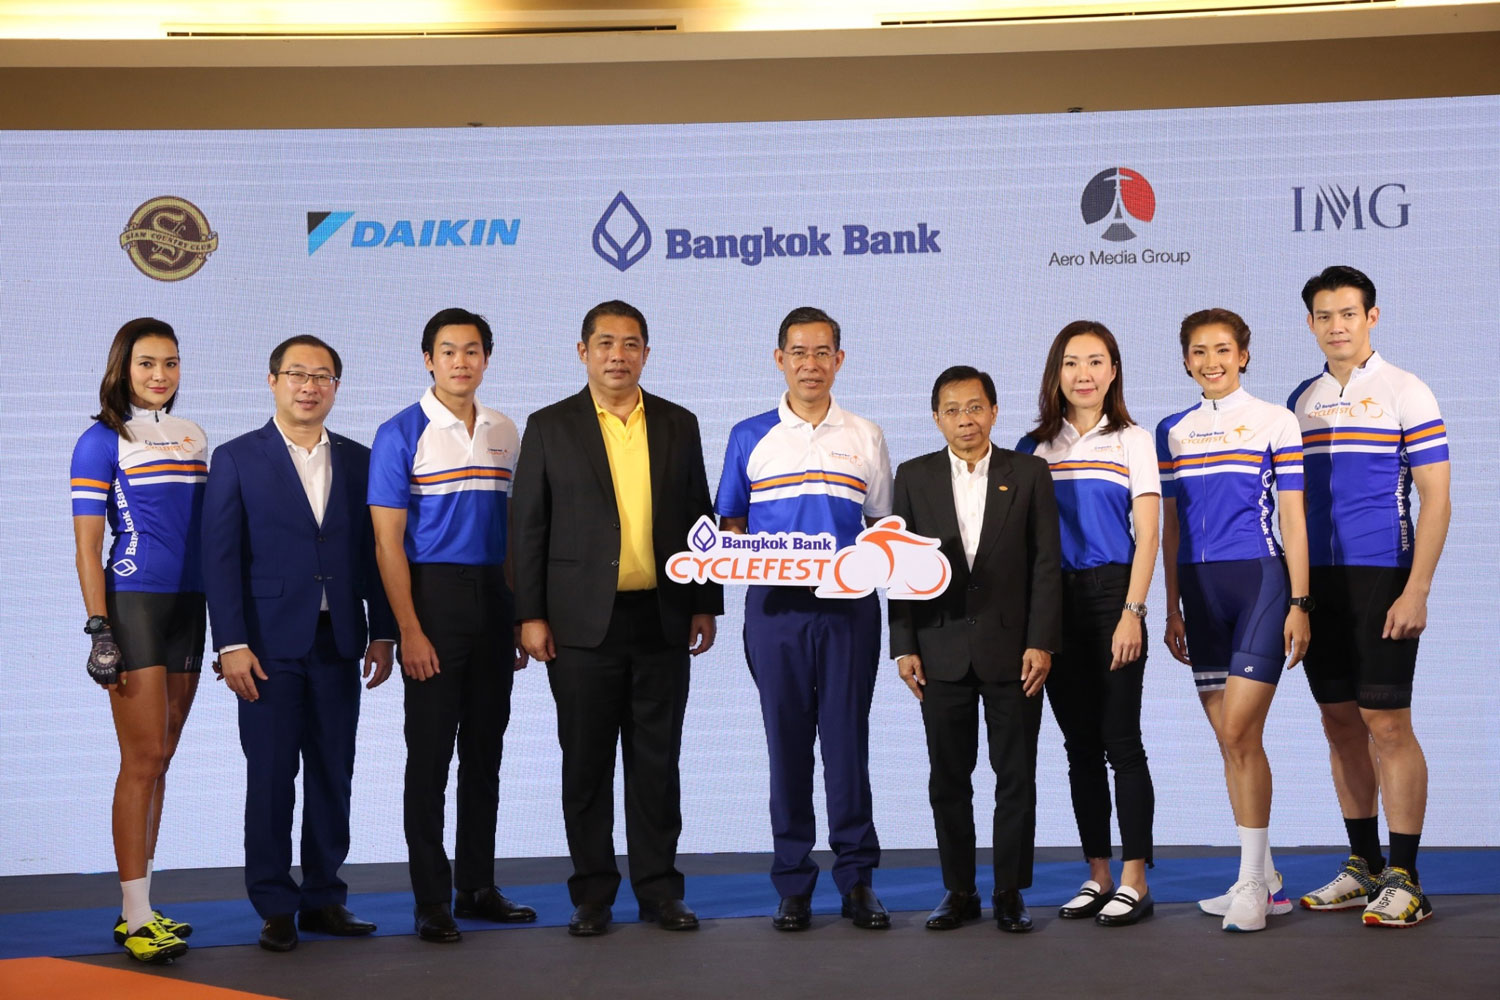 Siam Motors Group support to the year's biggest cycling event